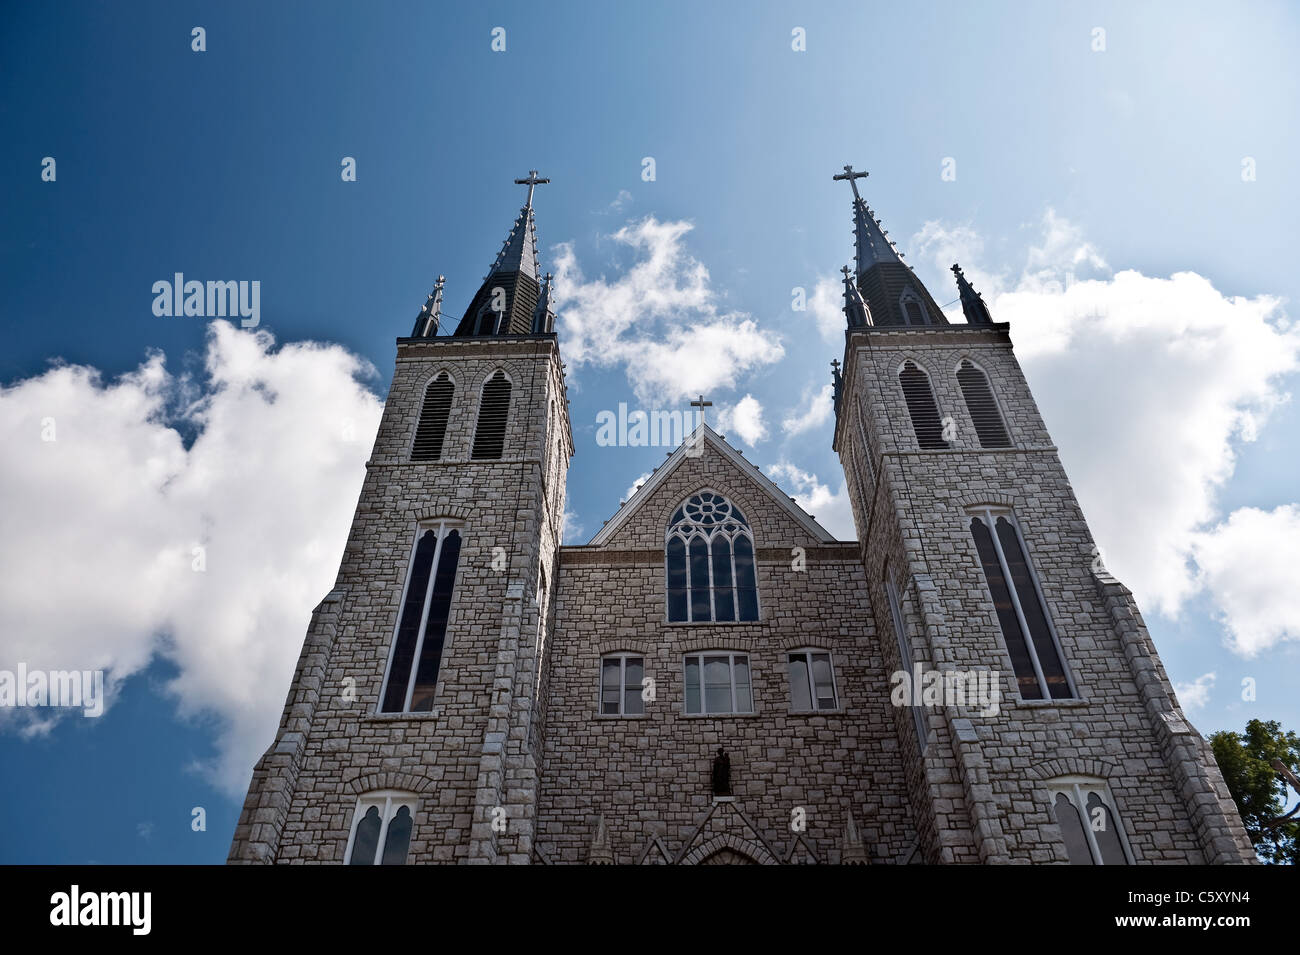 Saint Paul Cathedral in Midland Ontario, pilgrims place - Stock Image